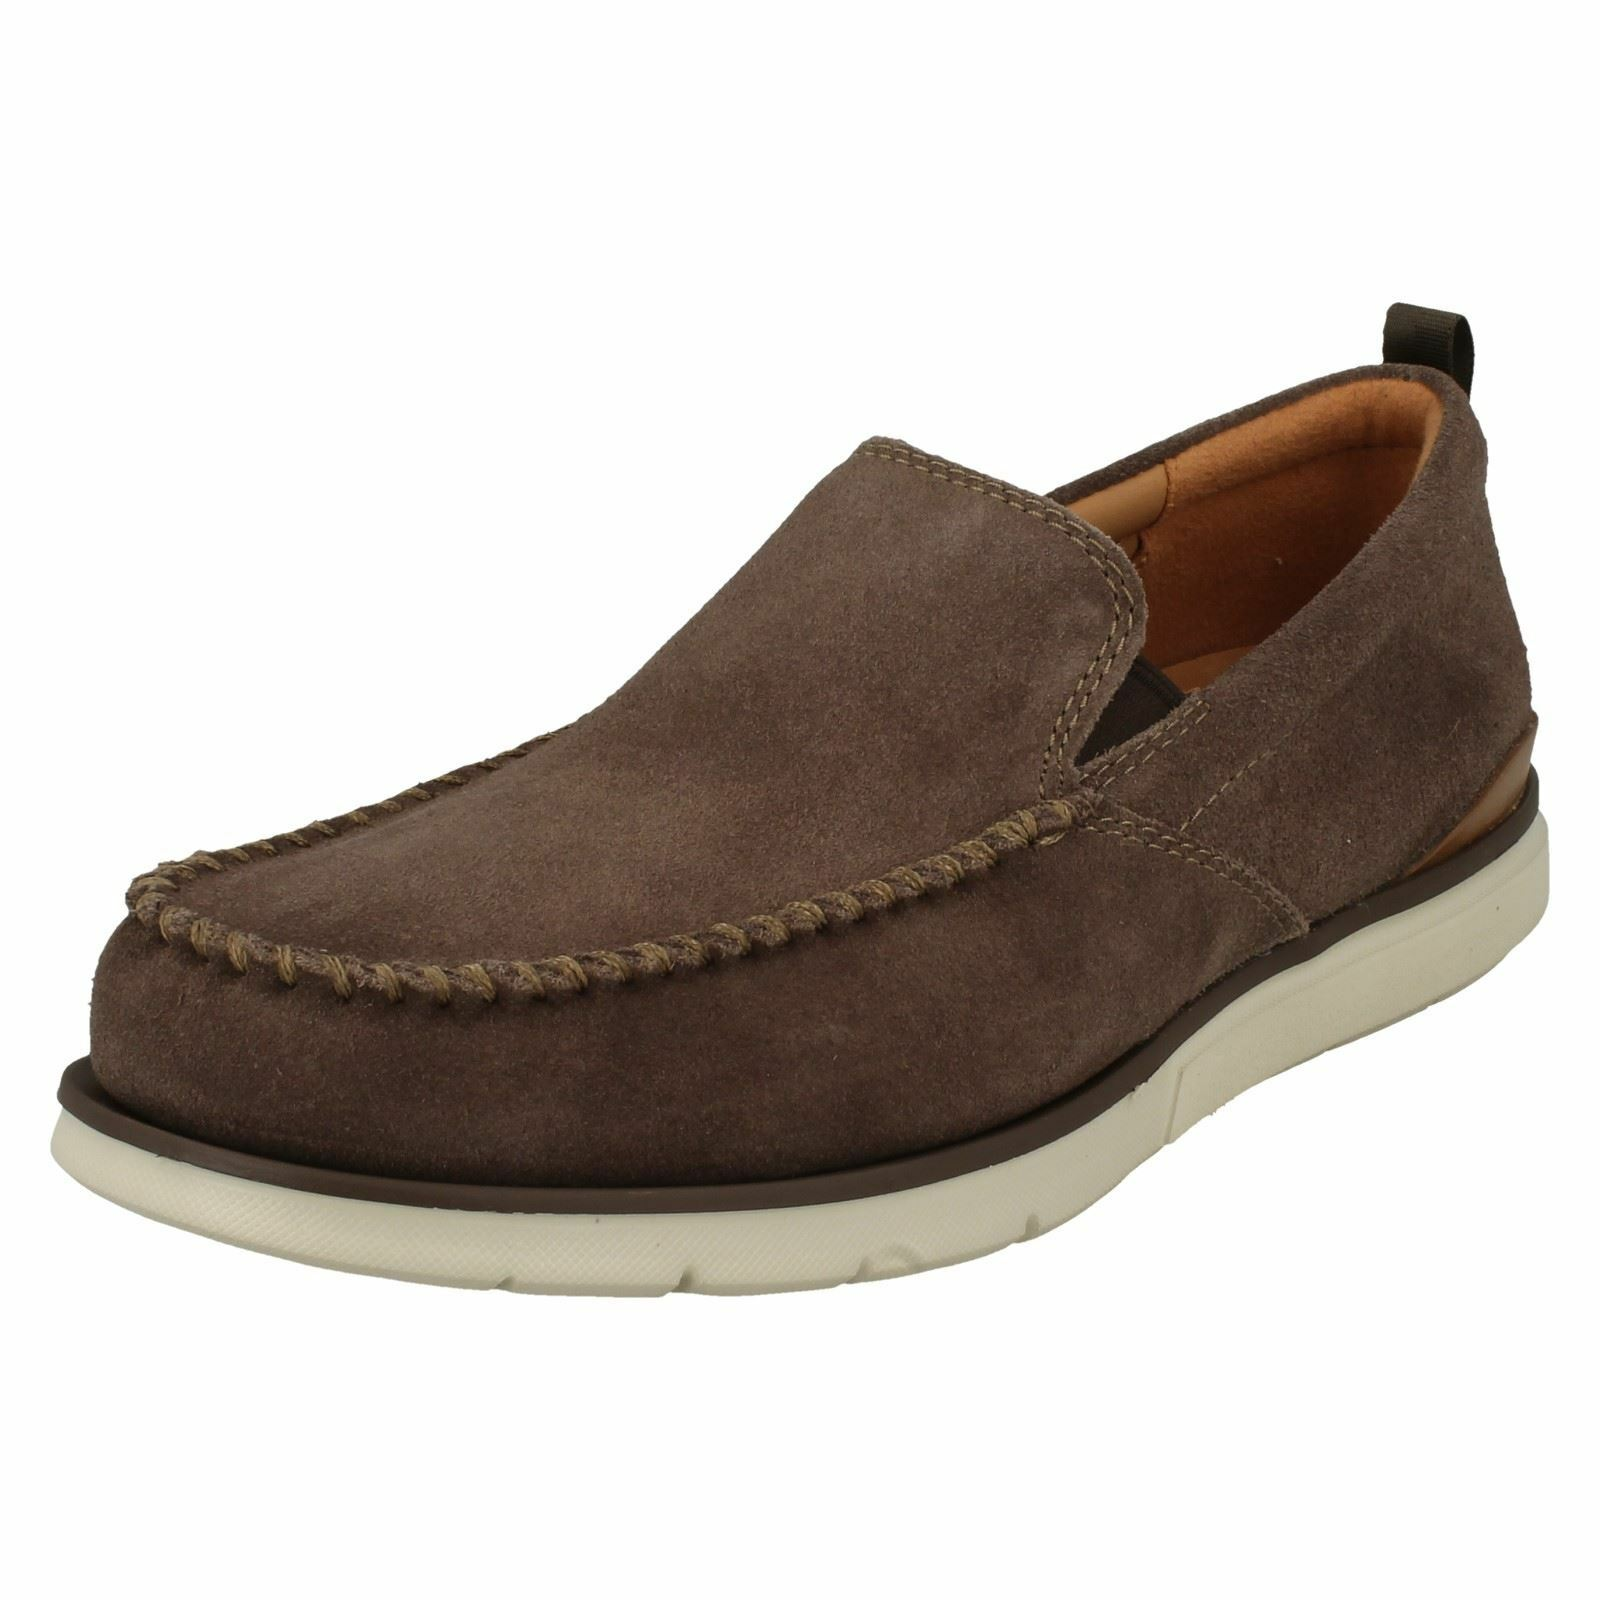 Uomo Clarks Casual Slip On Schuhes Edgewood Step